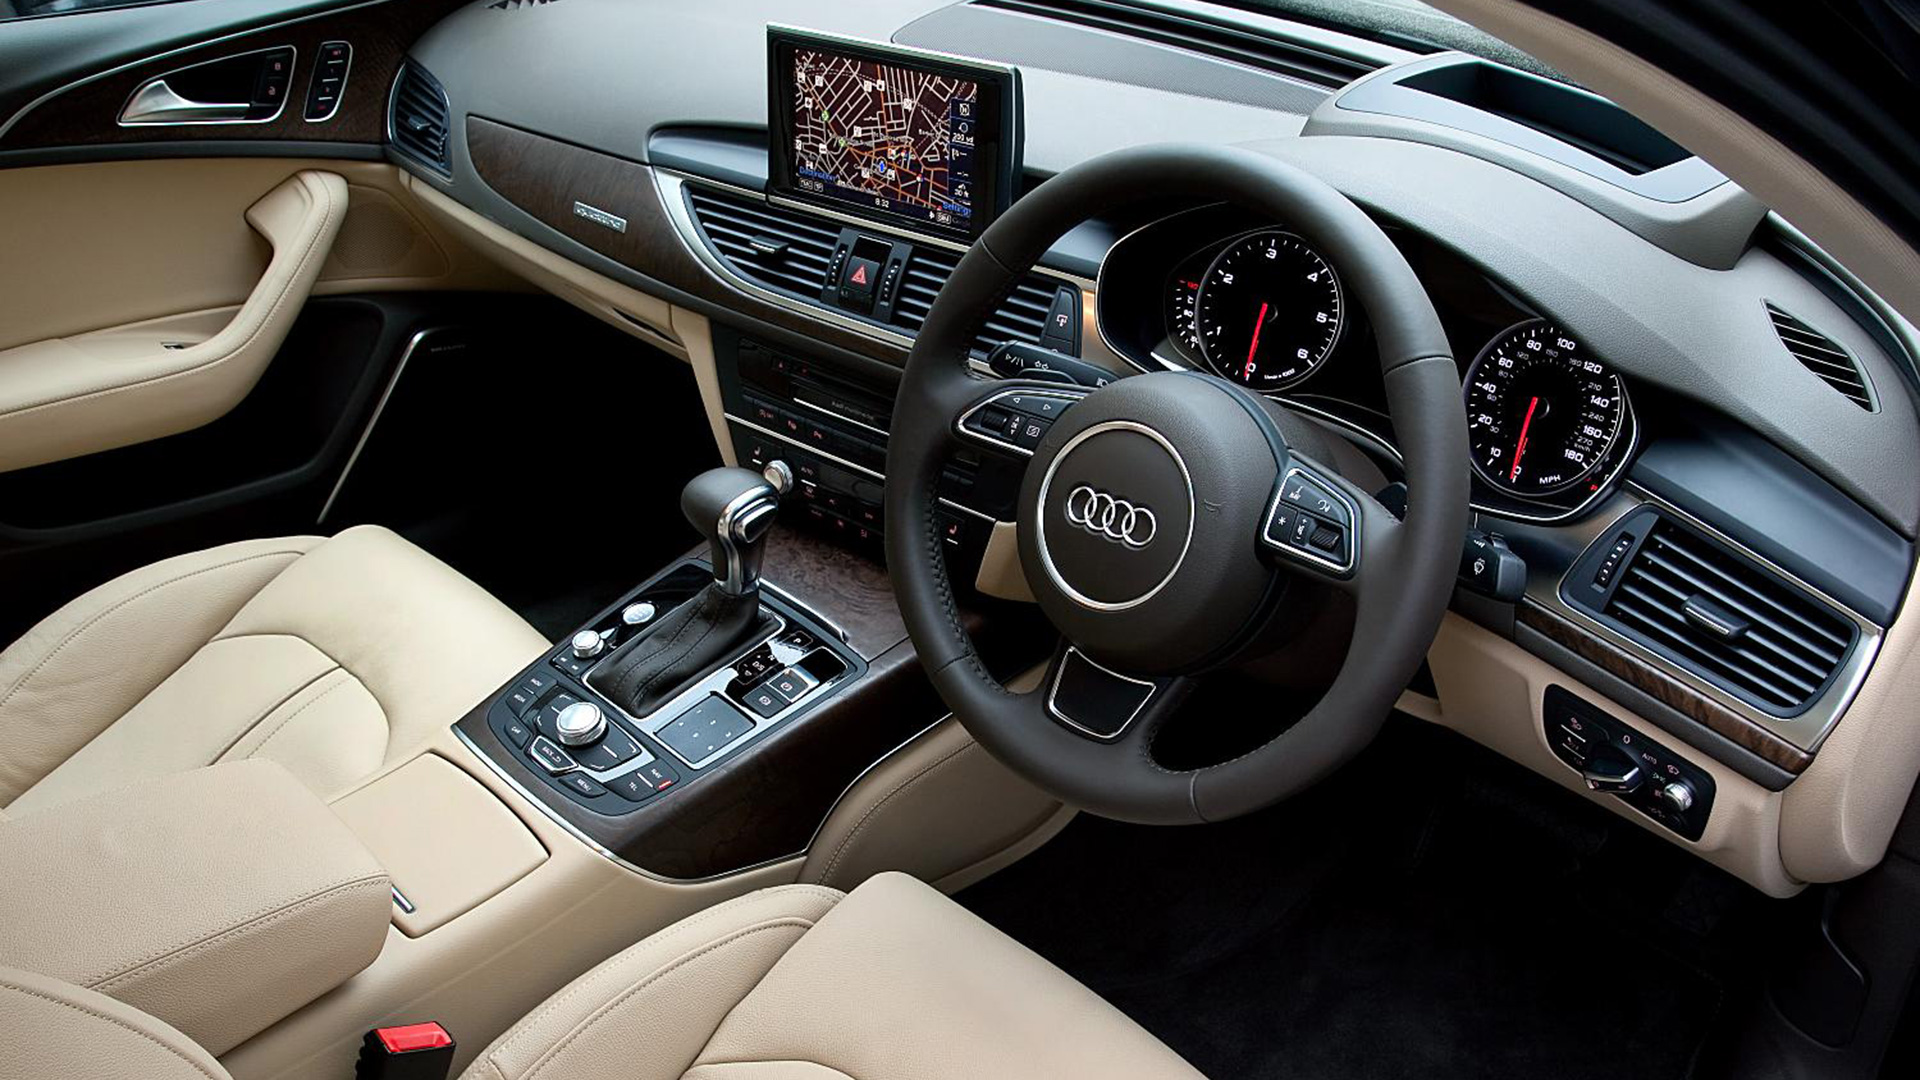 Audi A Price Mileage Reviews Specification Gallery - Audi a6 price